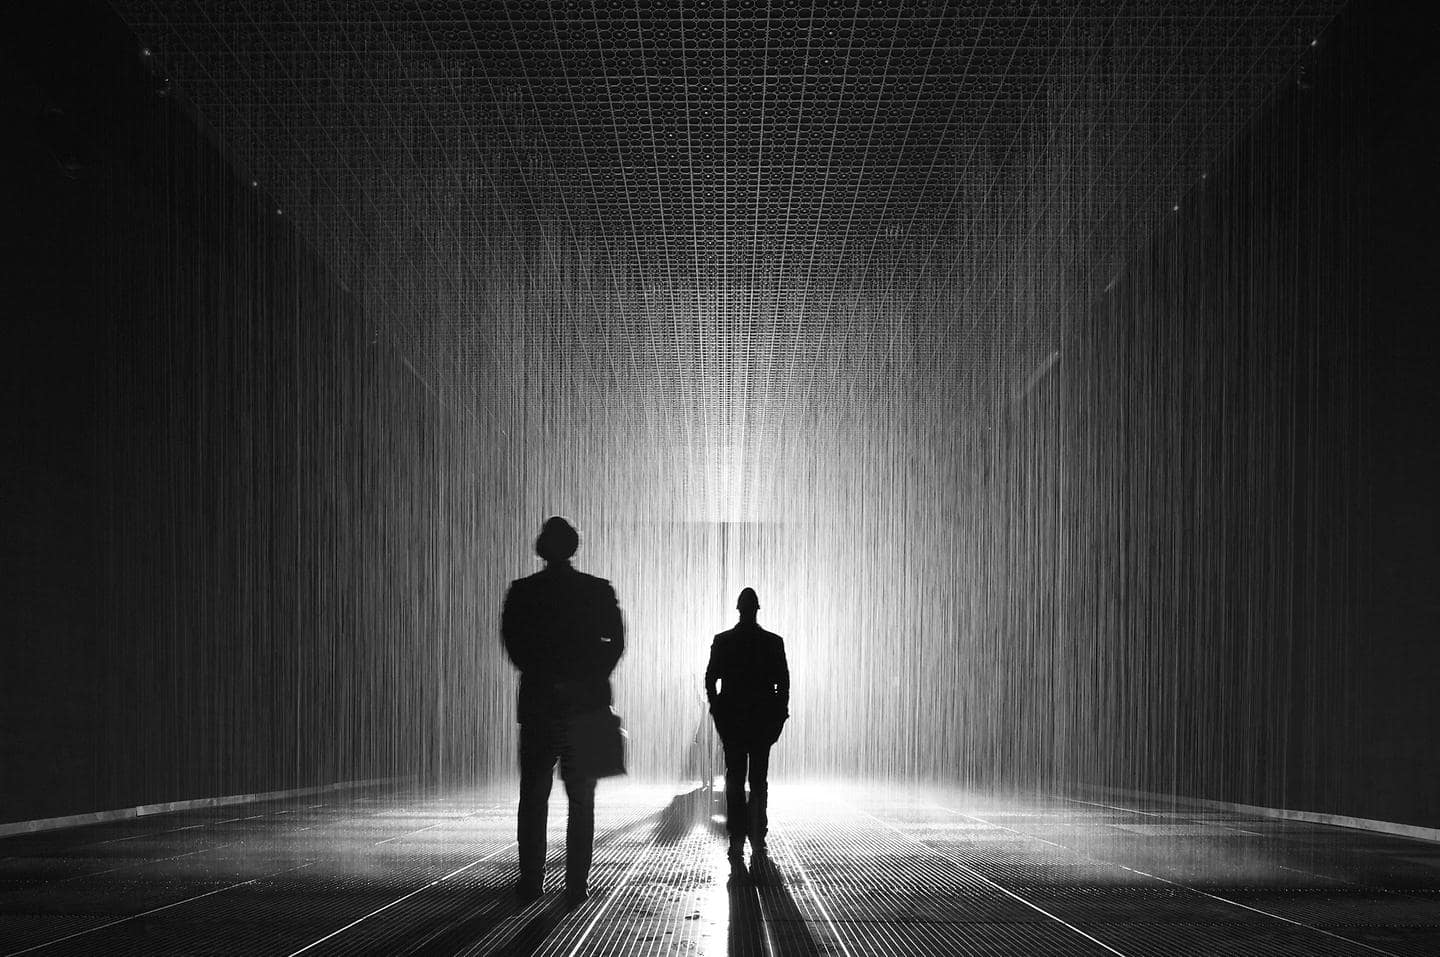 Hyundai Motor and LACMA's first project 'Rain Room' exhibit opens in Los Angeles 2